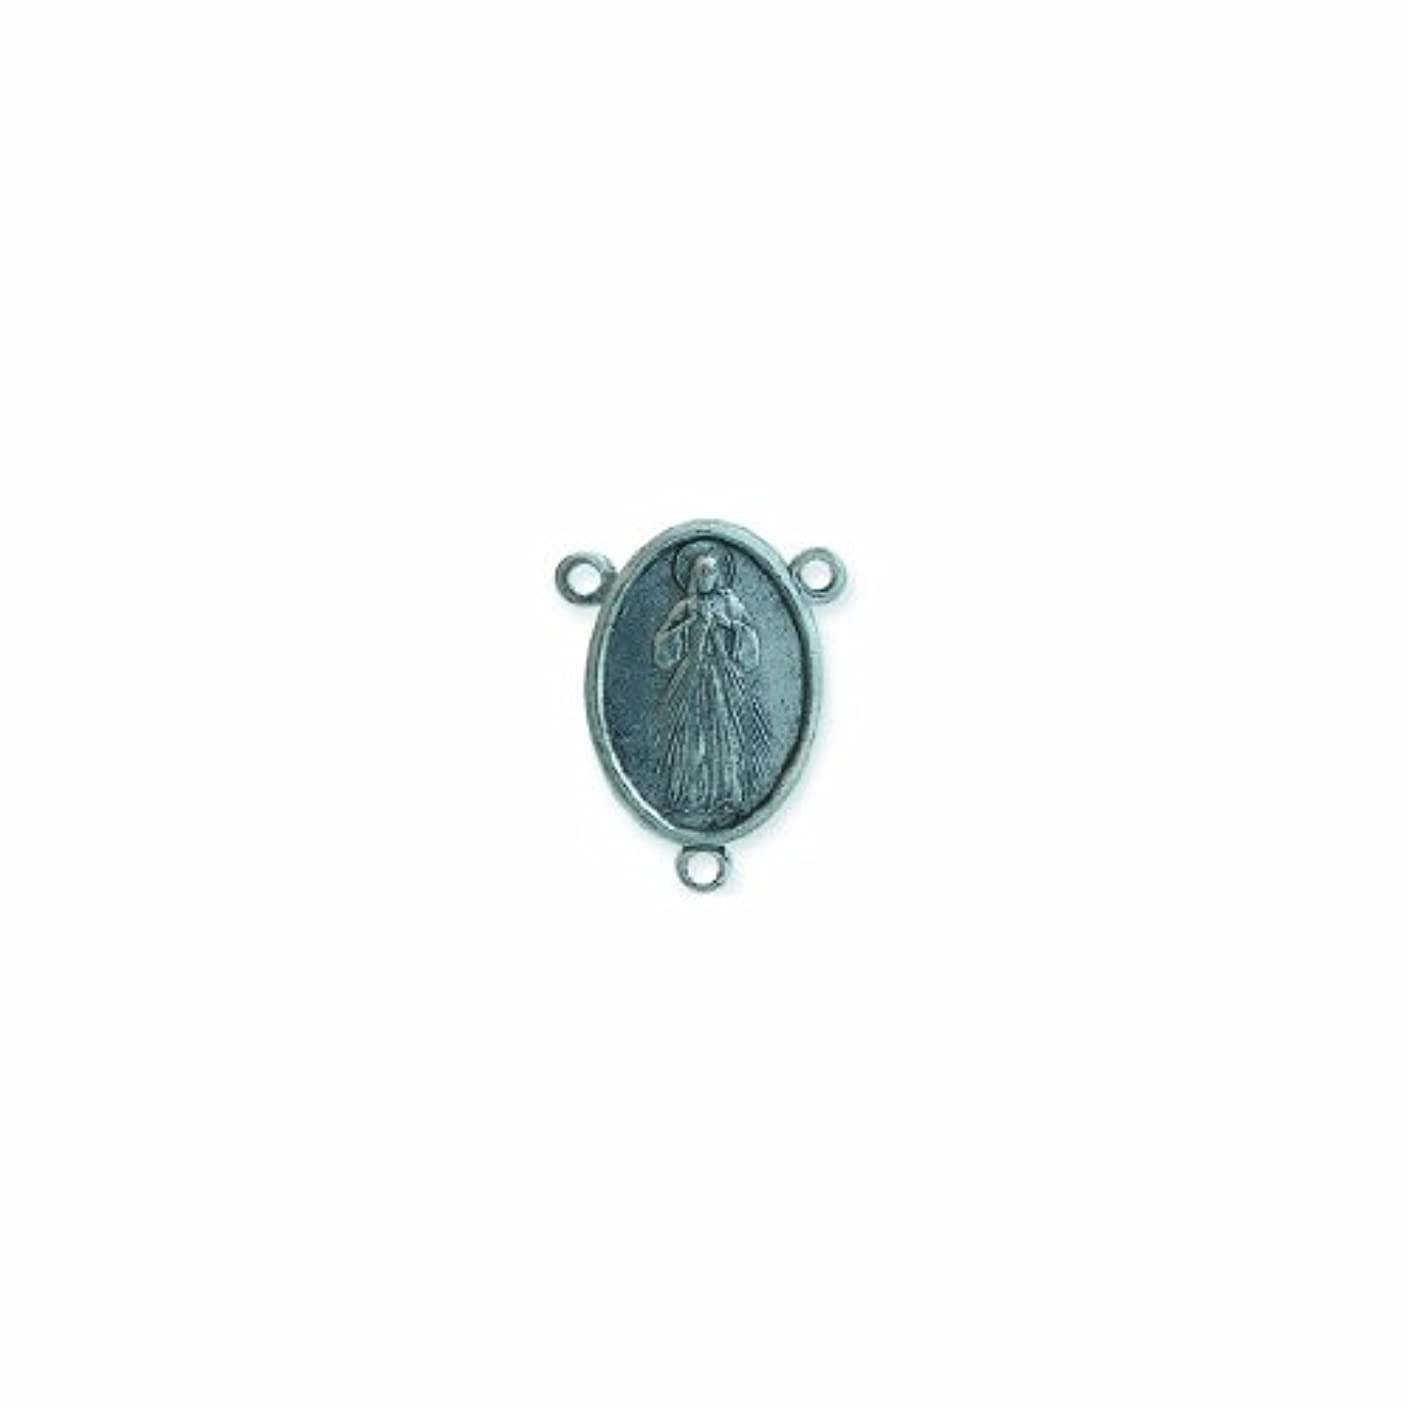 Shipwreck Beads Pewter 3-Loop Rosary Center, Metallic, Silver, 20 by 26mm, 3-Piece